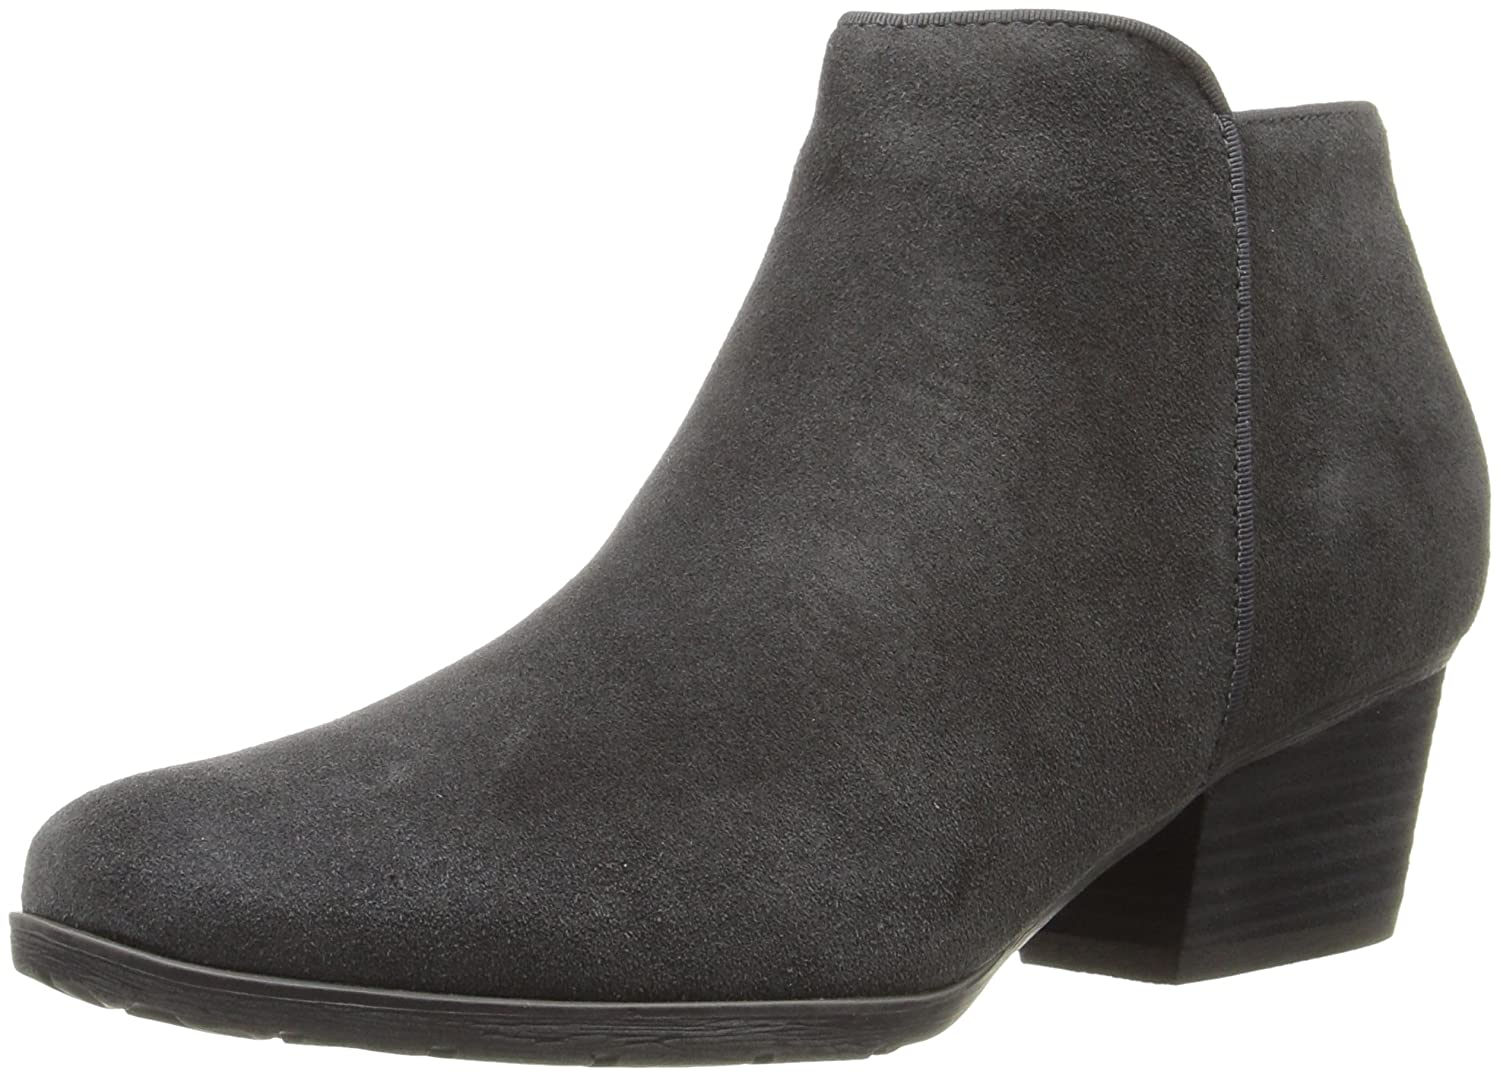 Blondo Women's Villa Waterproof Ankle Bootie B01M0AFCSF 7 B(M) US|Grey